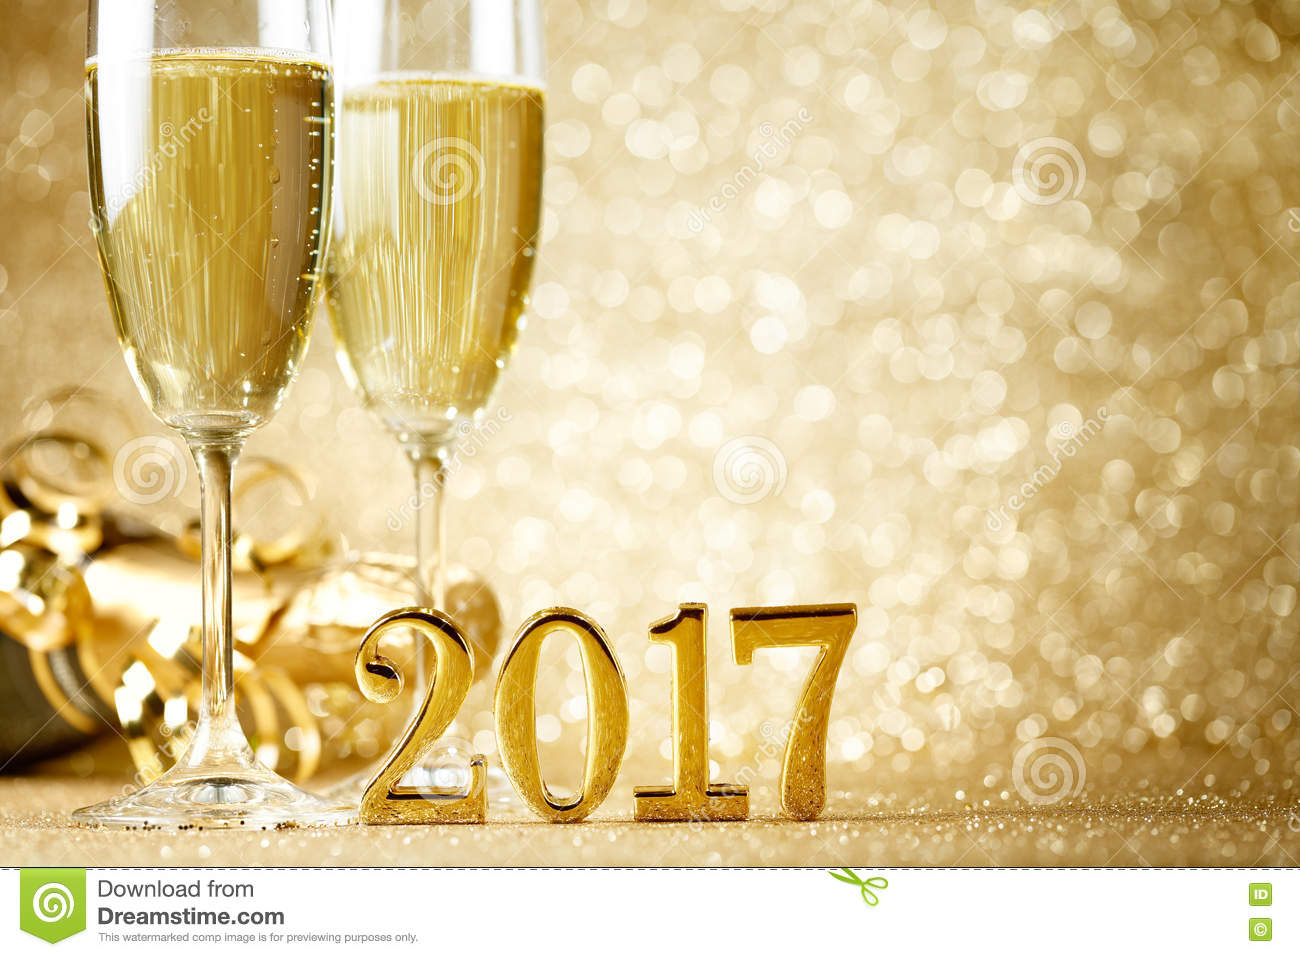 celebrating new years eve essay New year's eve customs vary depending on where you are in the world, and each country and city has their own way of celebrating there are countless.